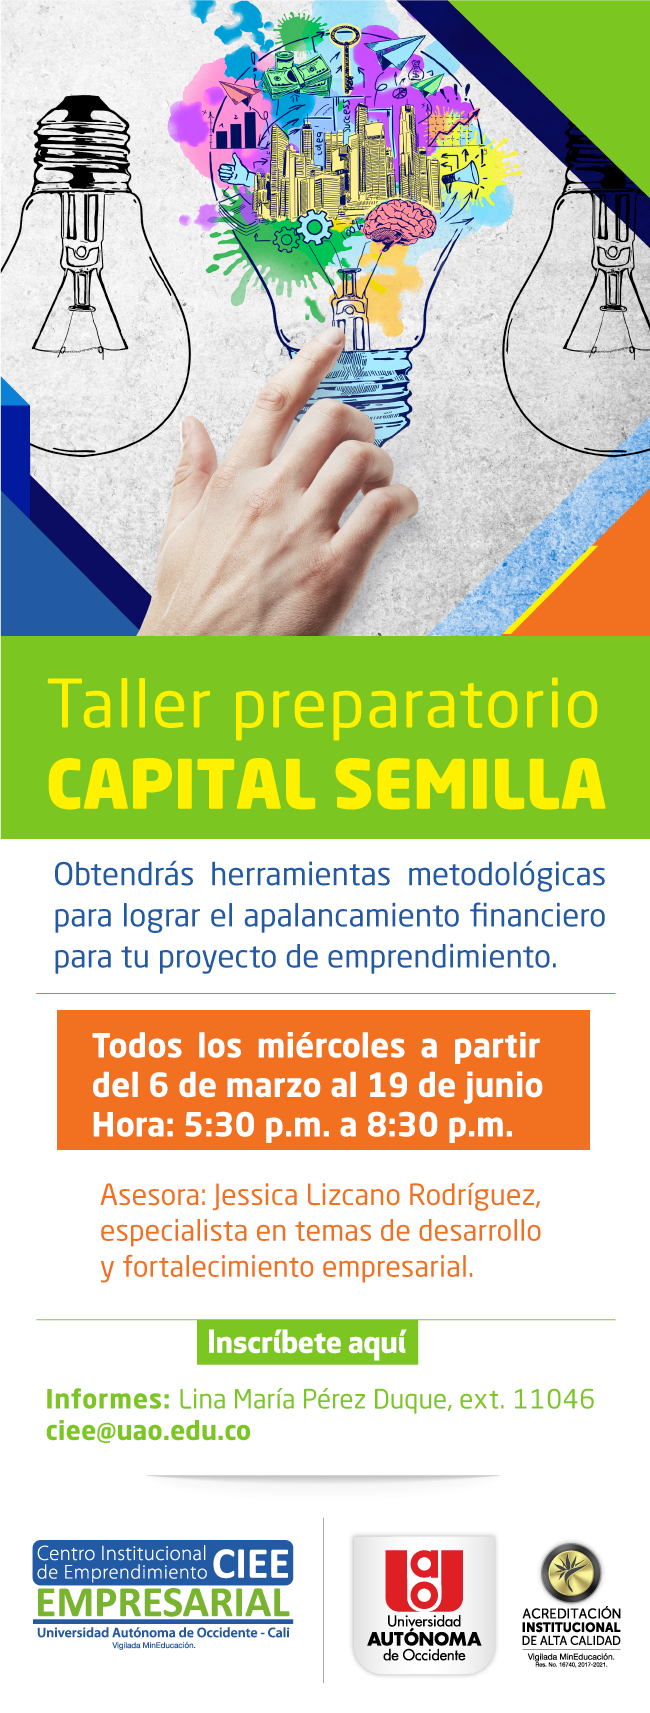 TALLER PREPARATORIO CAPITAL SEMILLA